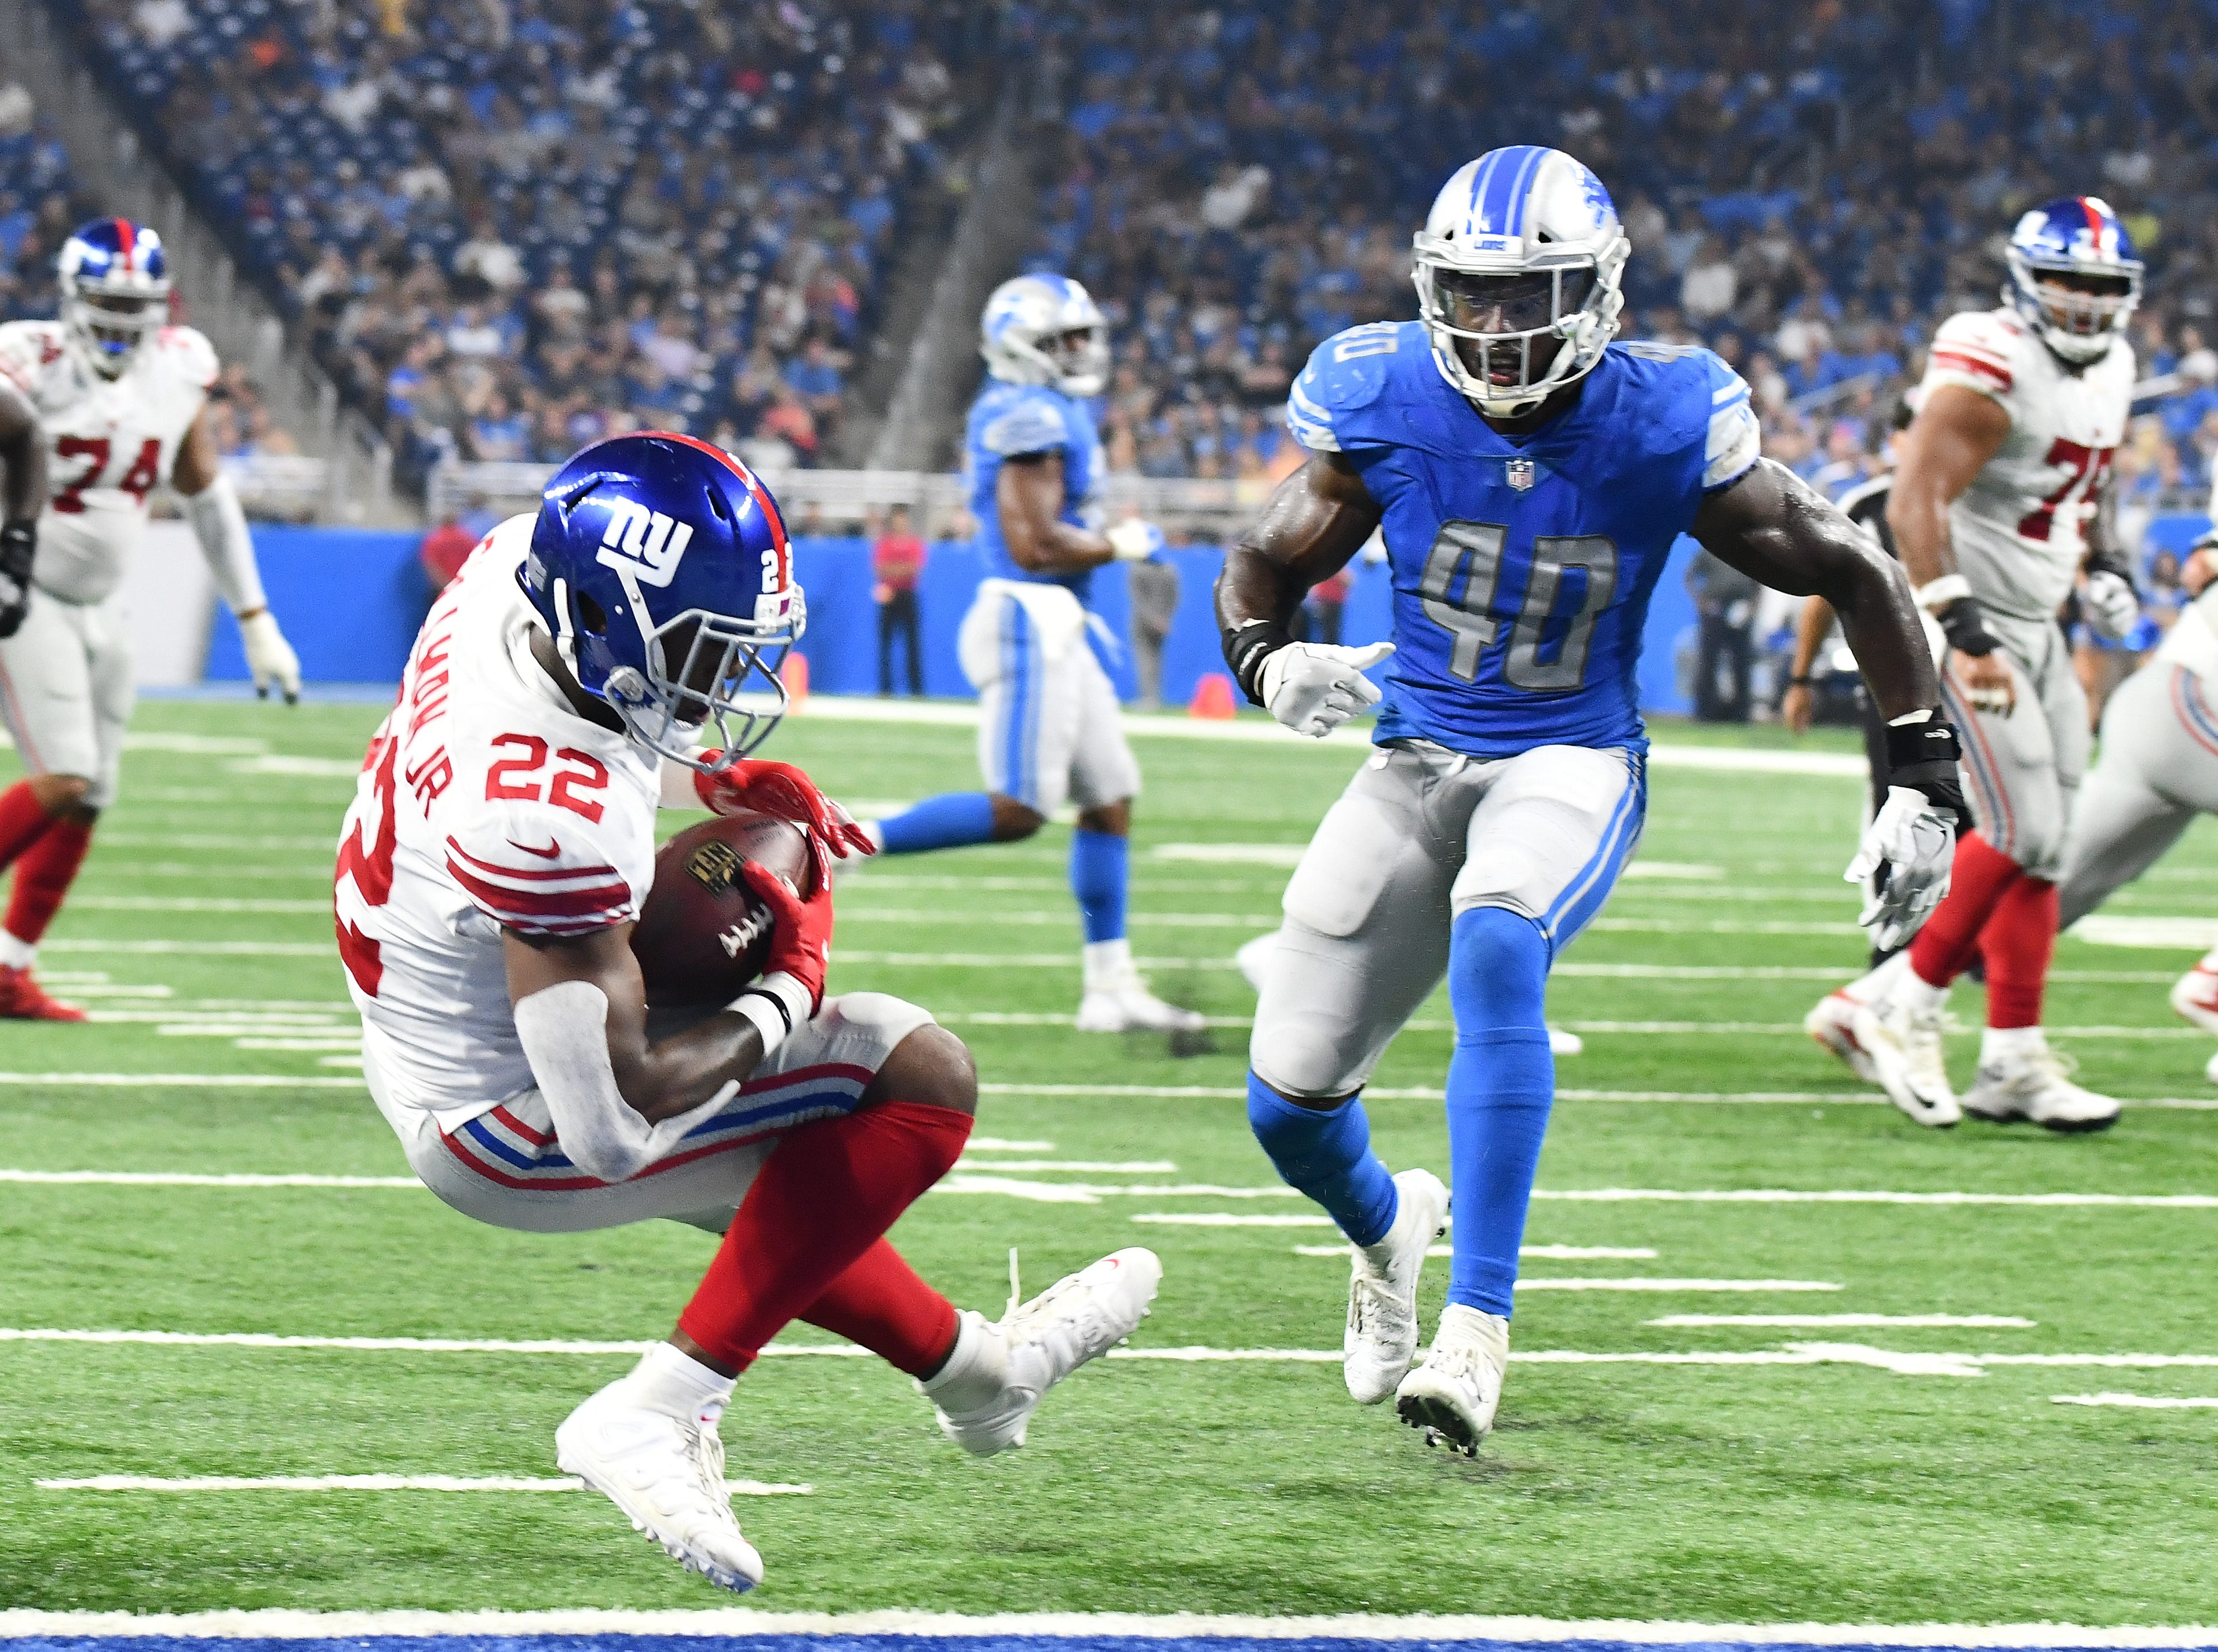 Giants' Wayne Gallman Jr. steps back into the end zone on a touchdown completion in front of Lions' Jarrad Davis in the second quarter.